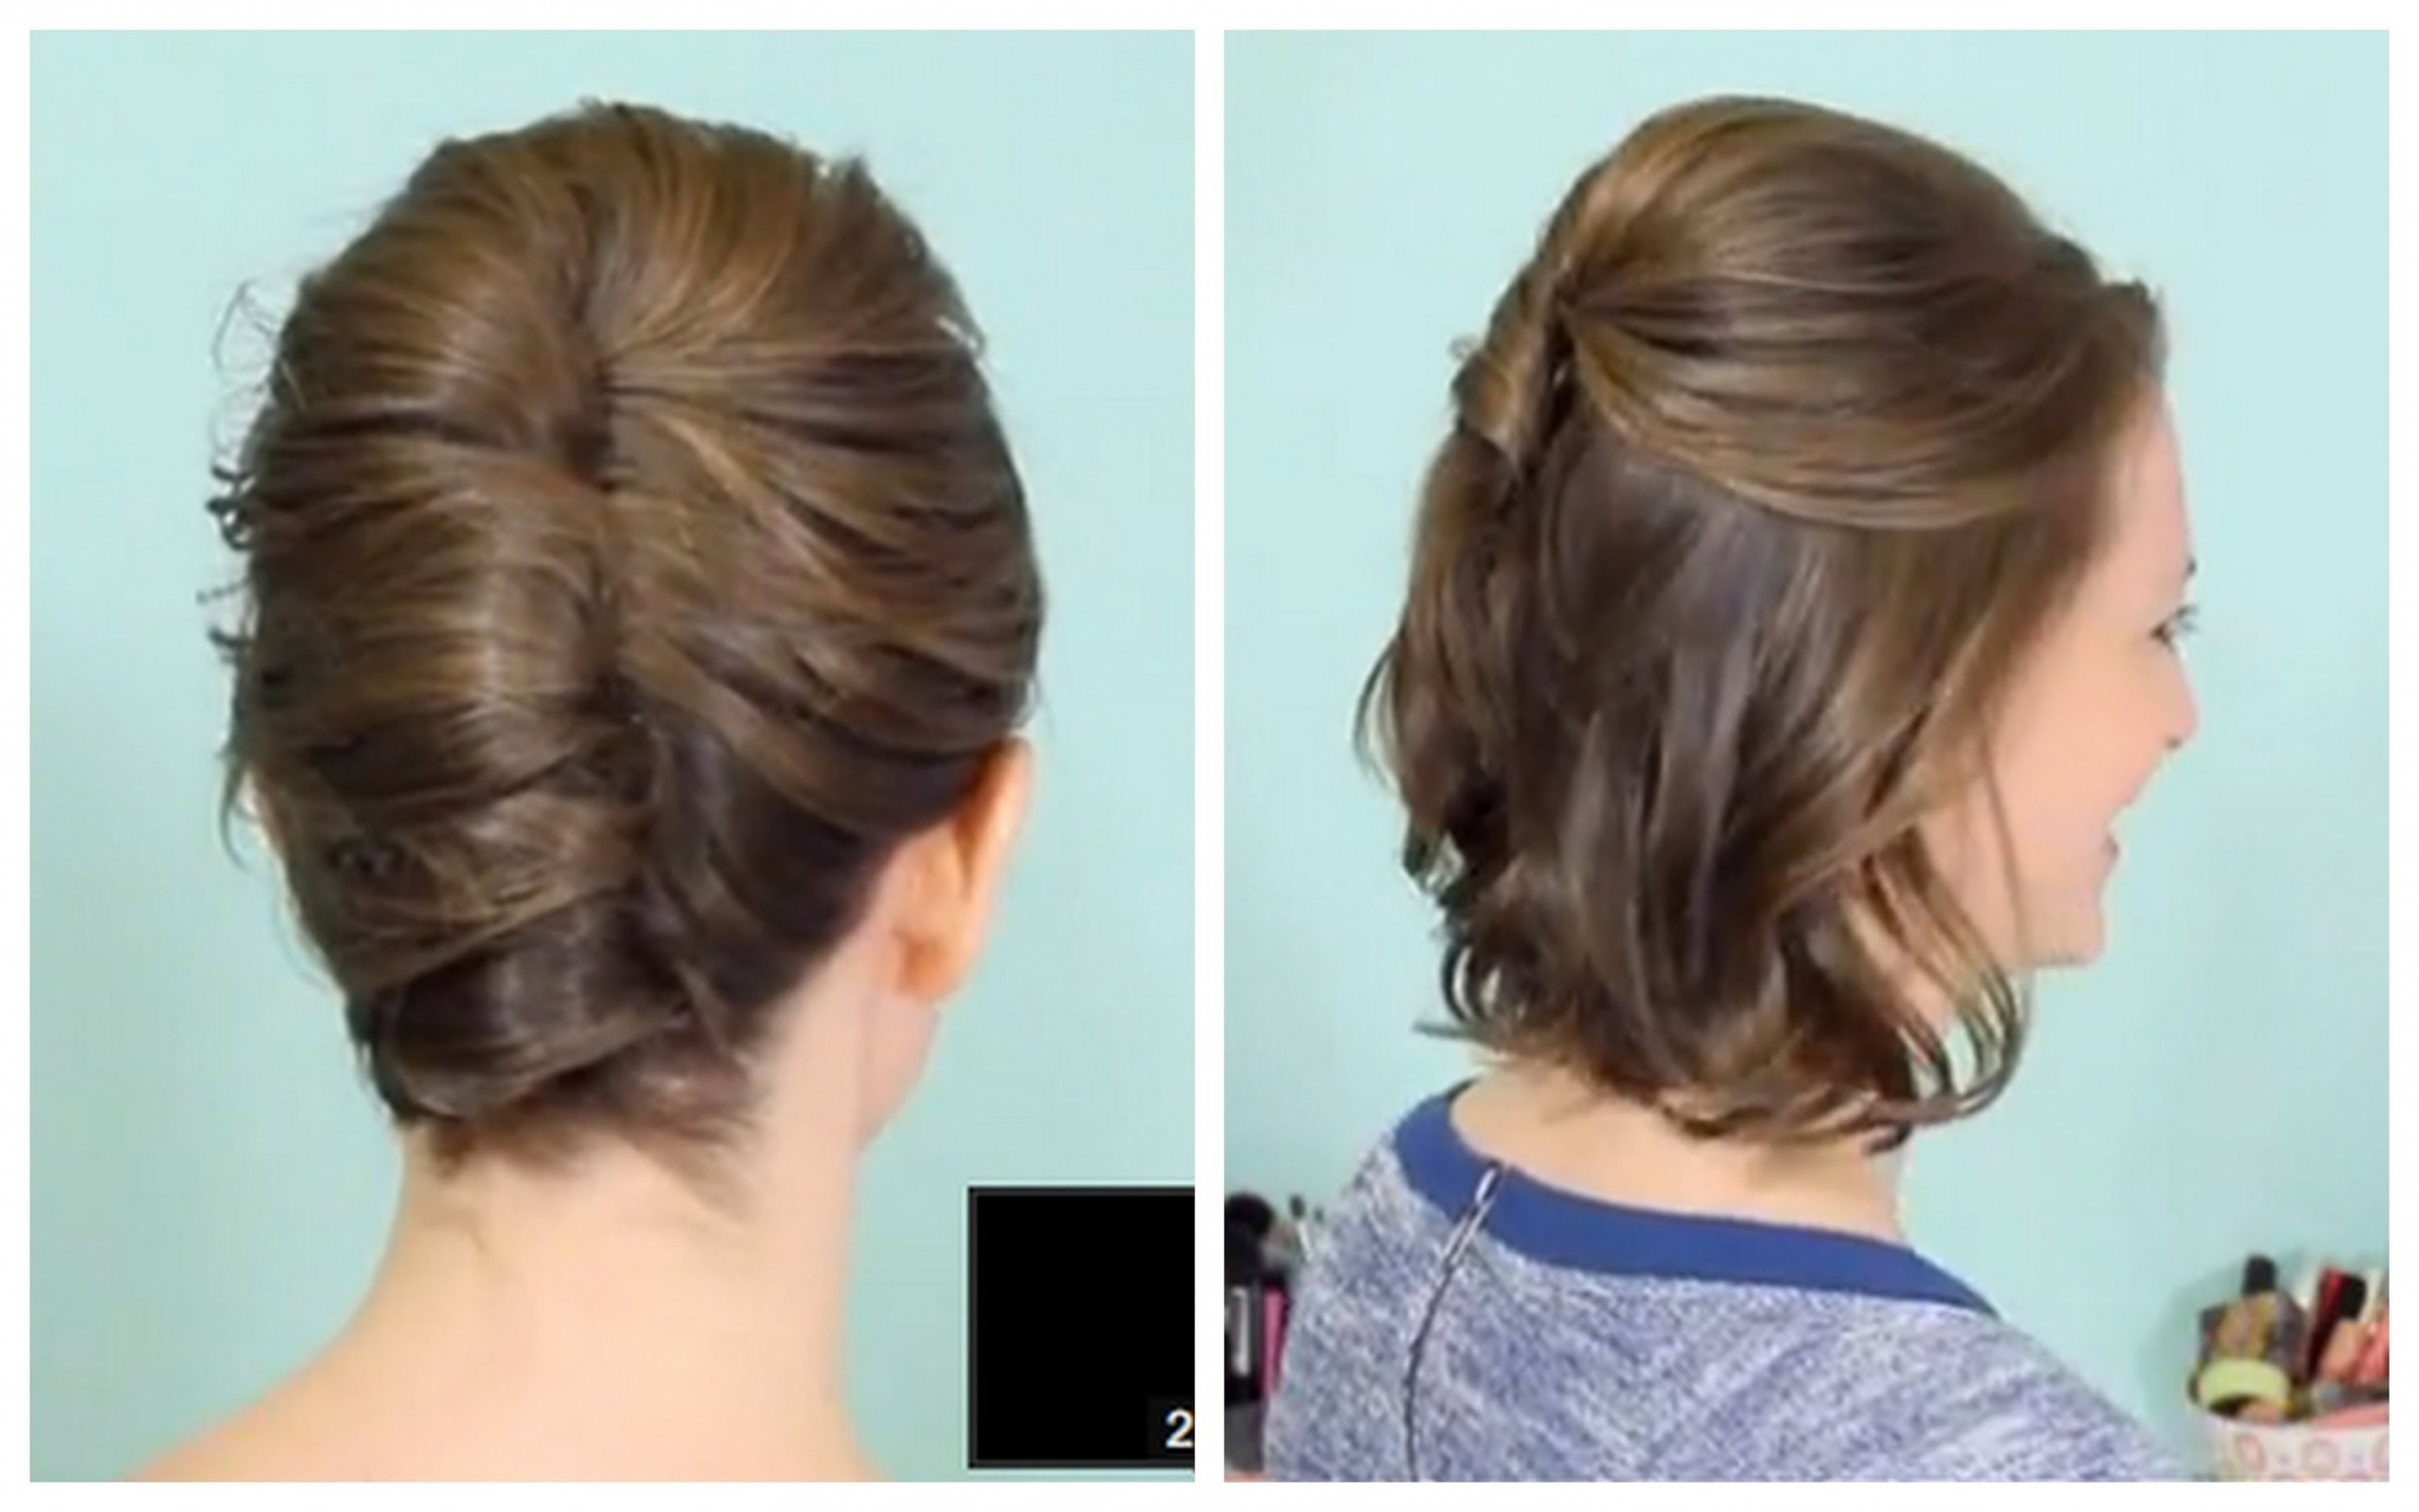 Updo Short Hairstyles French Twist Half Updo For Short Hair | Latest Inside French Twist Updo Hairstyles For Short Hair (View 15 of 15)